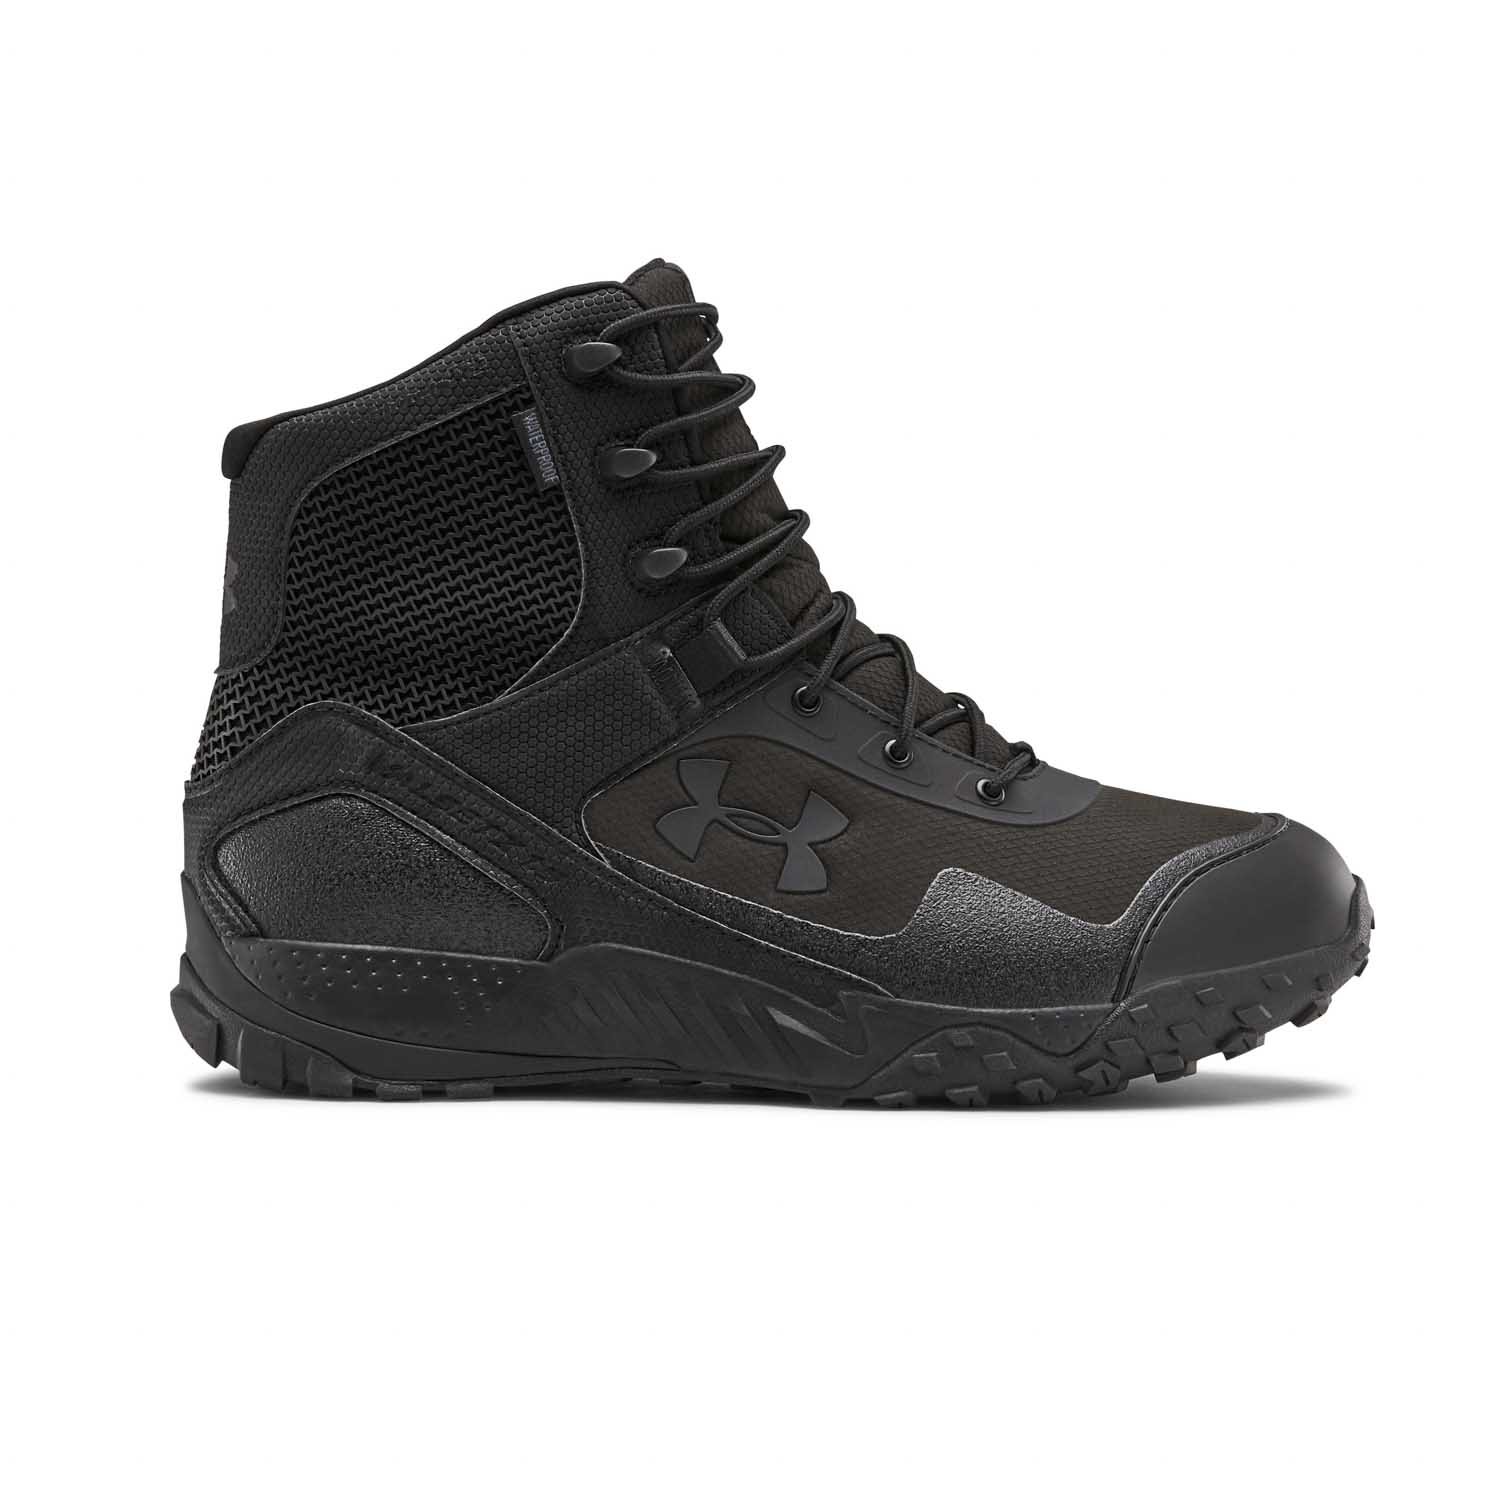 Under Armour Valsetz RTS 1.5 Waterproof Tactical Boots